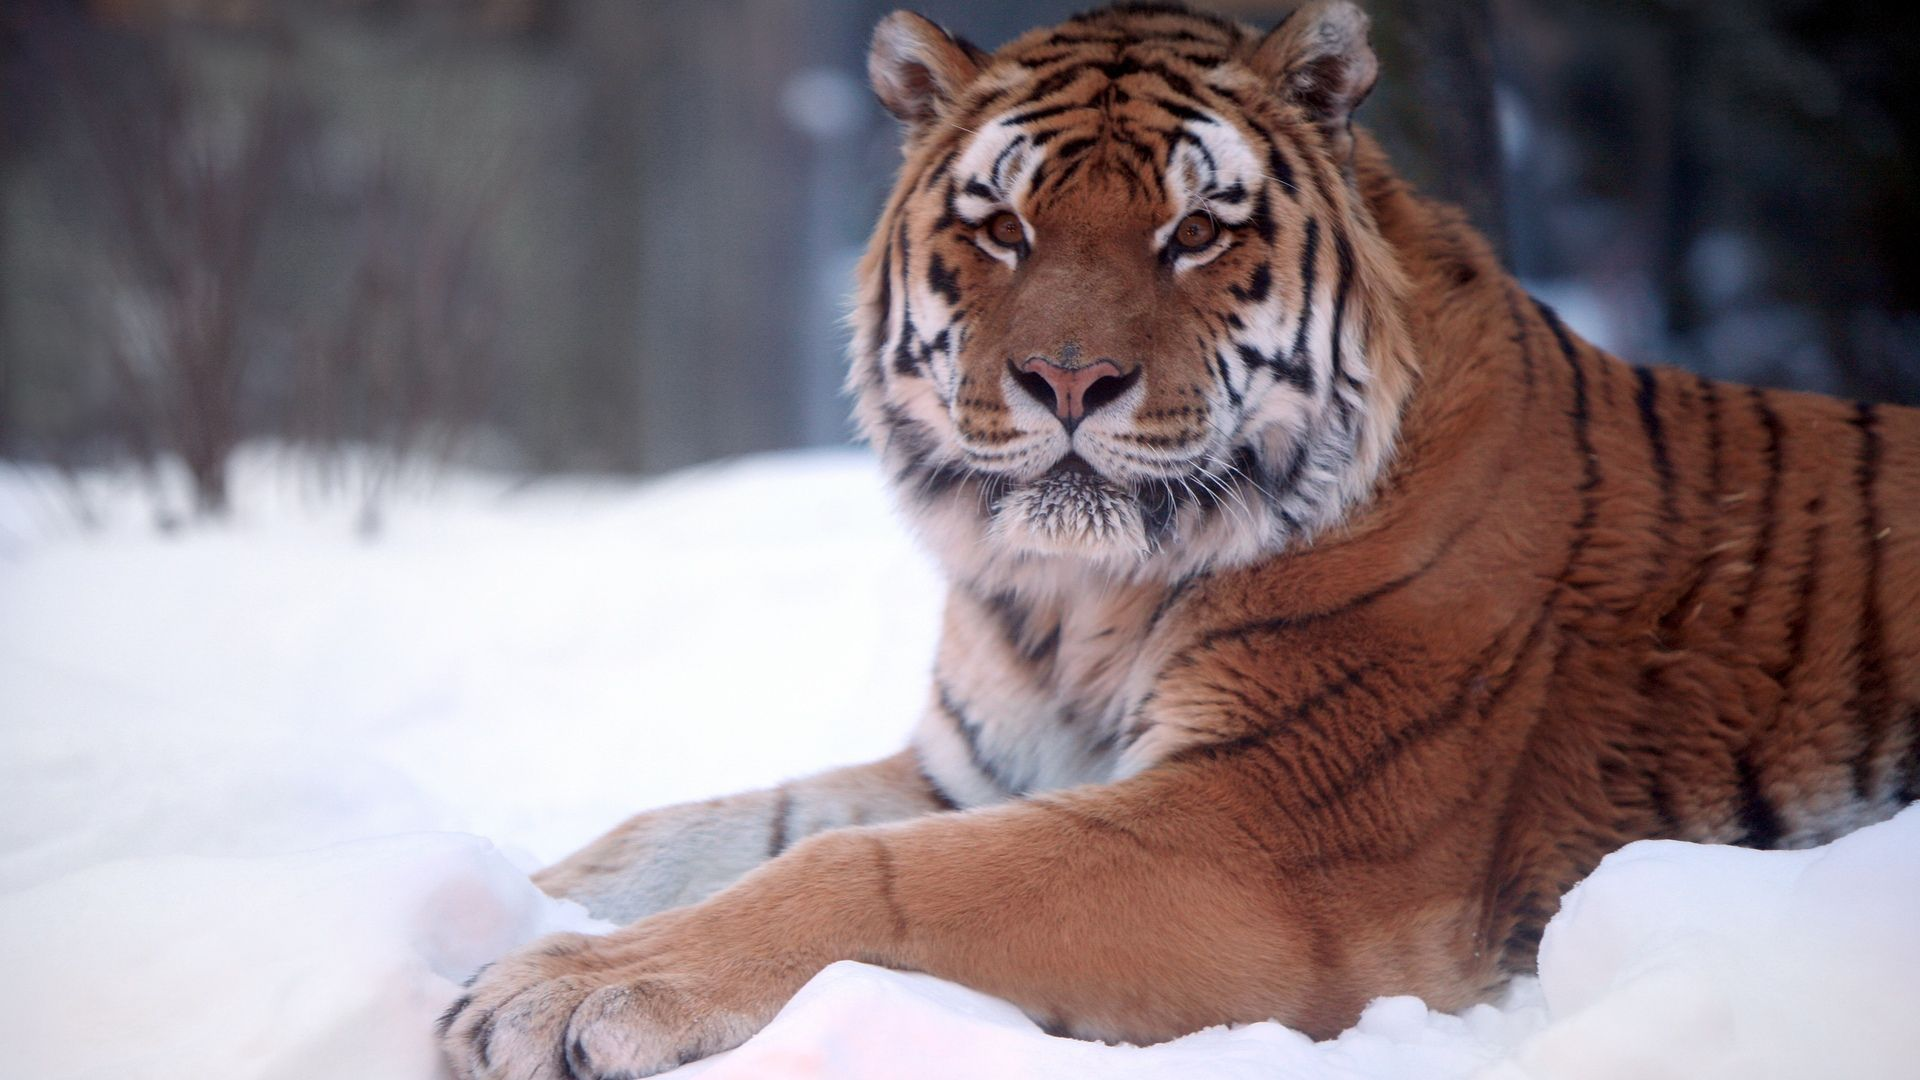 bing tiger | animals tigers hd wallpaper of size 1920x1080